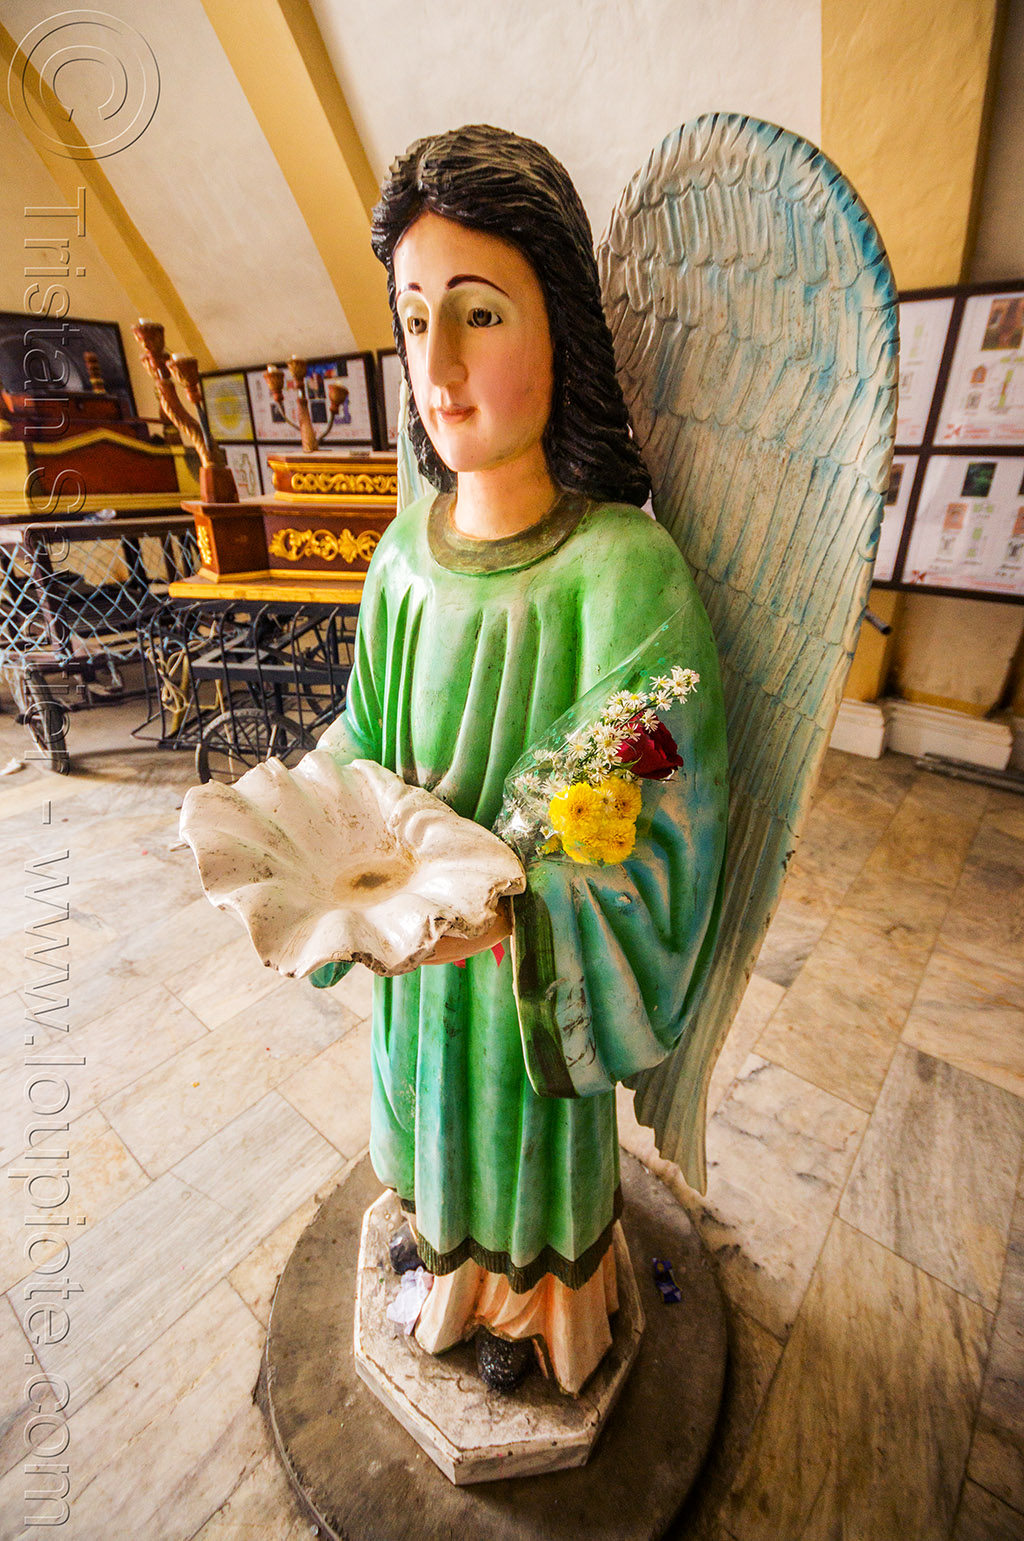 angel holding shell stoup (philippines), angel, philippines, religion, sculpture, sea shell, standing, status, stoup, tuguegarao